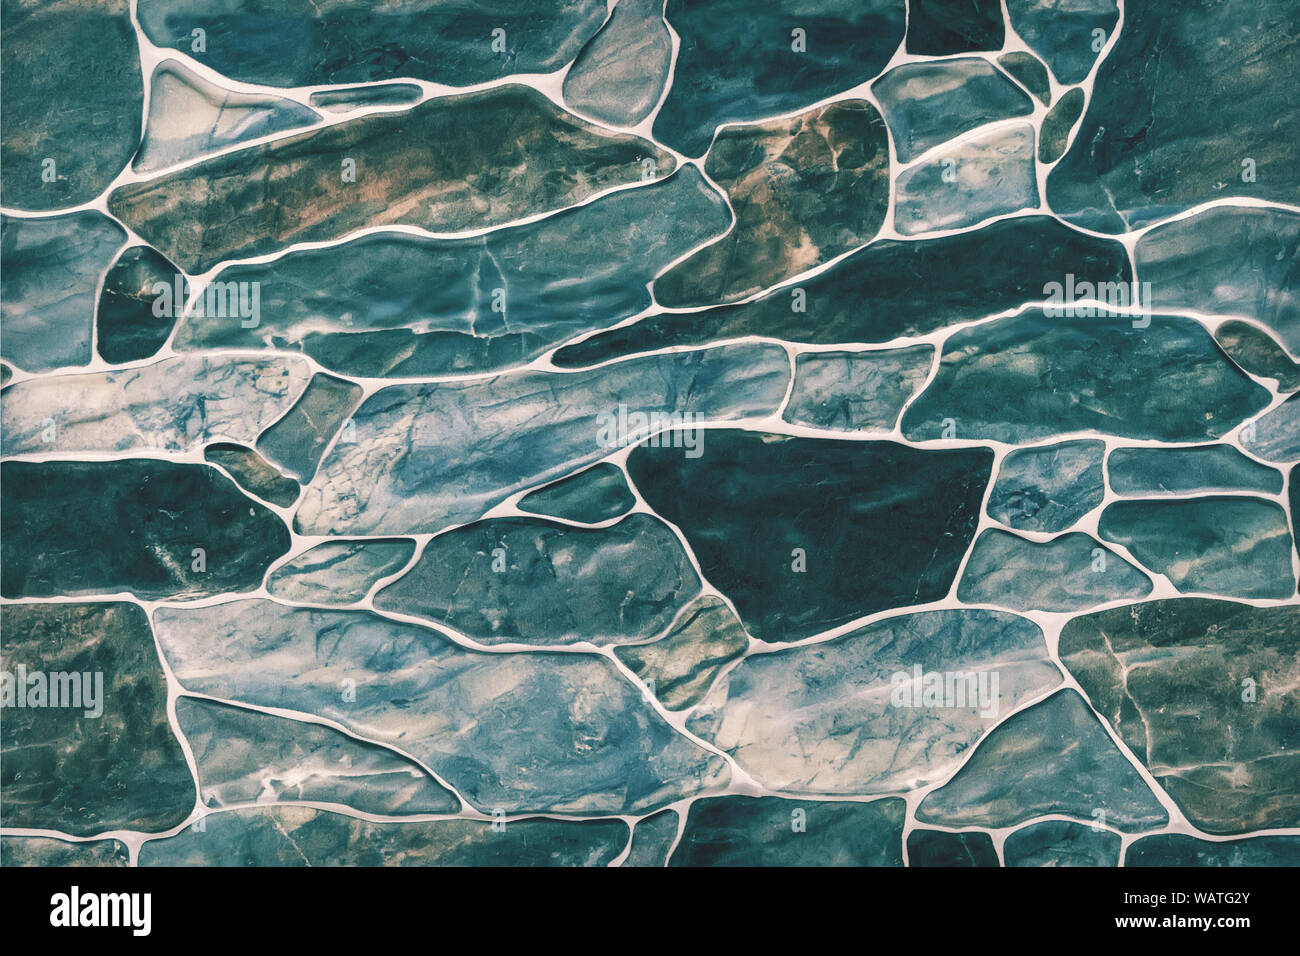 Blue Marble Texture Abstract Seamless Background Infinitely Seamless Texture Of Dark Blue Marble Stones For Decorative Wall And Fence Decoration Stock Photo Alamy